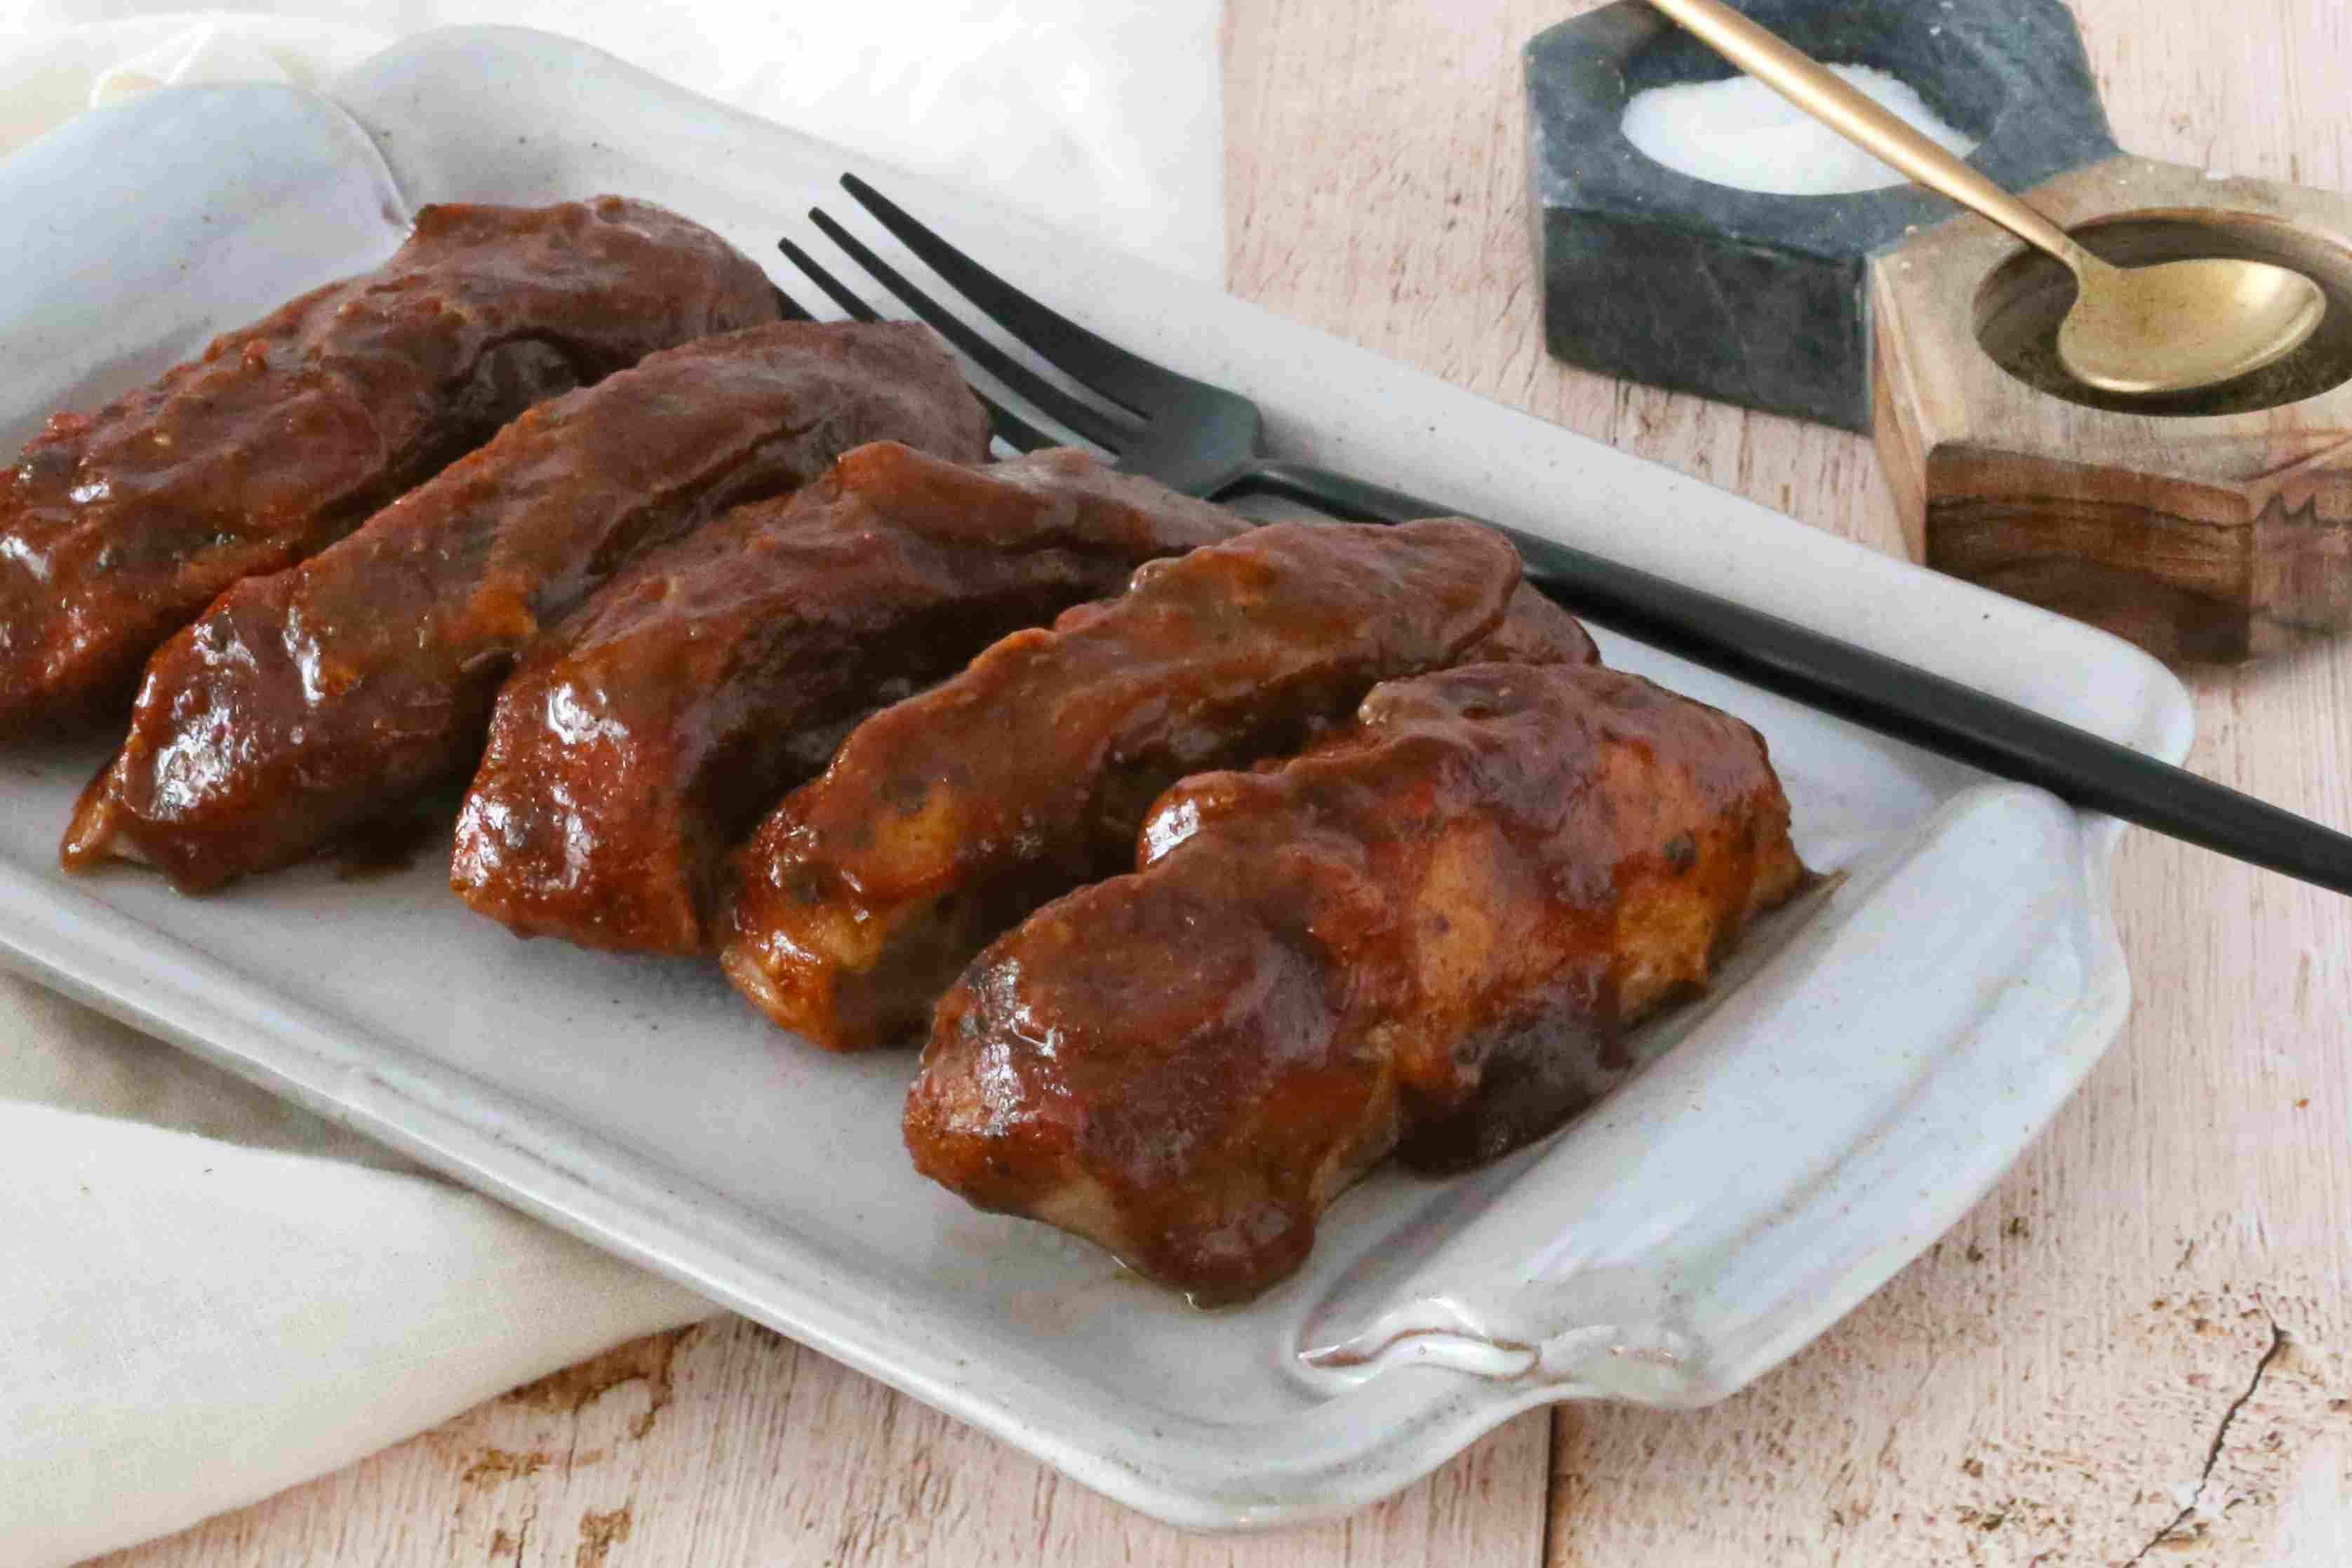 Baked country-style ribs on a platter